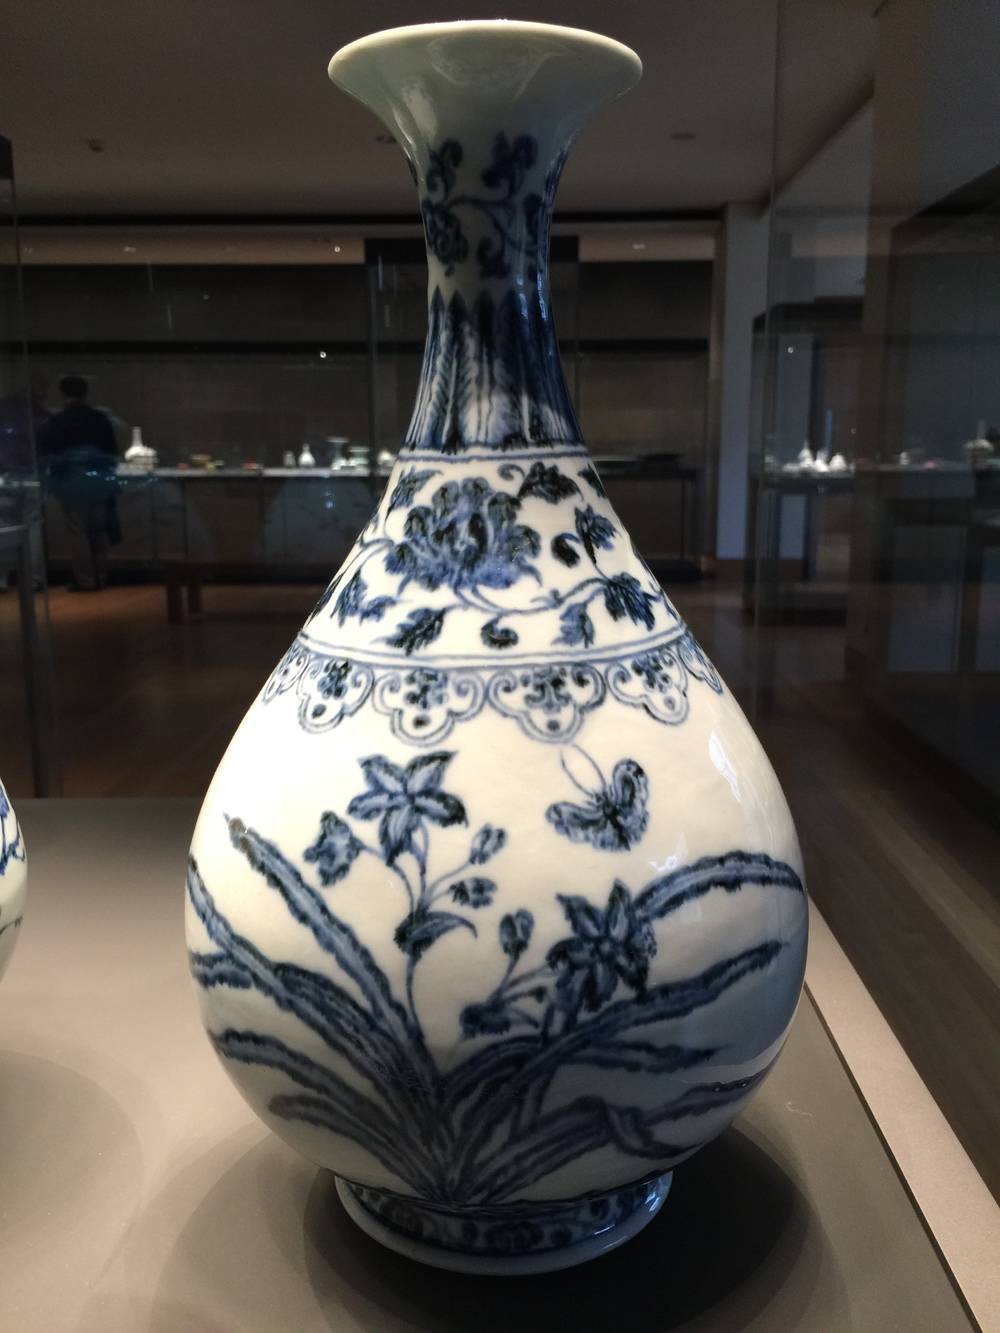 Chinese-Porcelain-British-Museum-Percival-David-jessewaugh.com-35.jpg